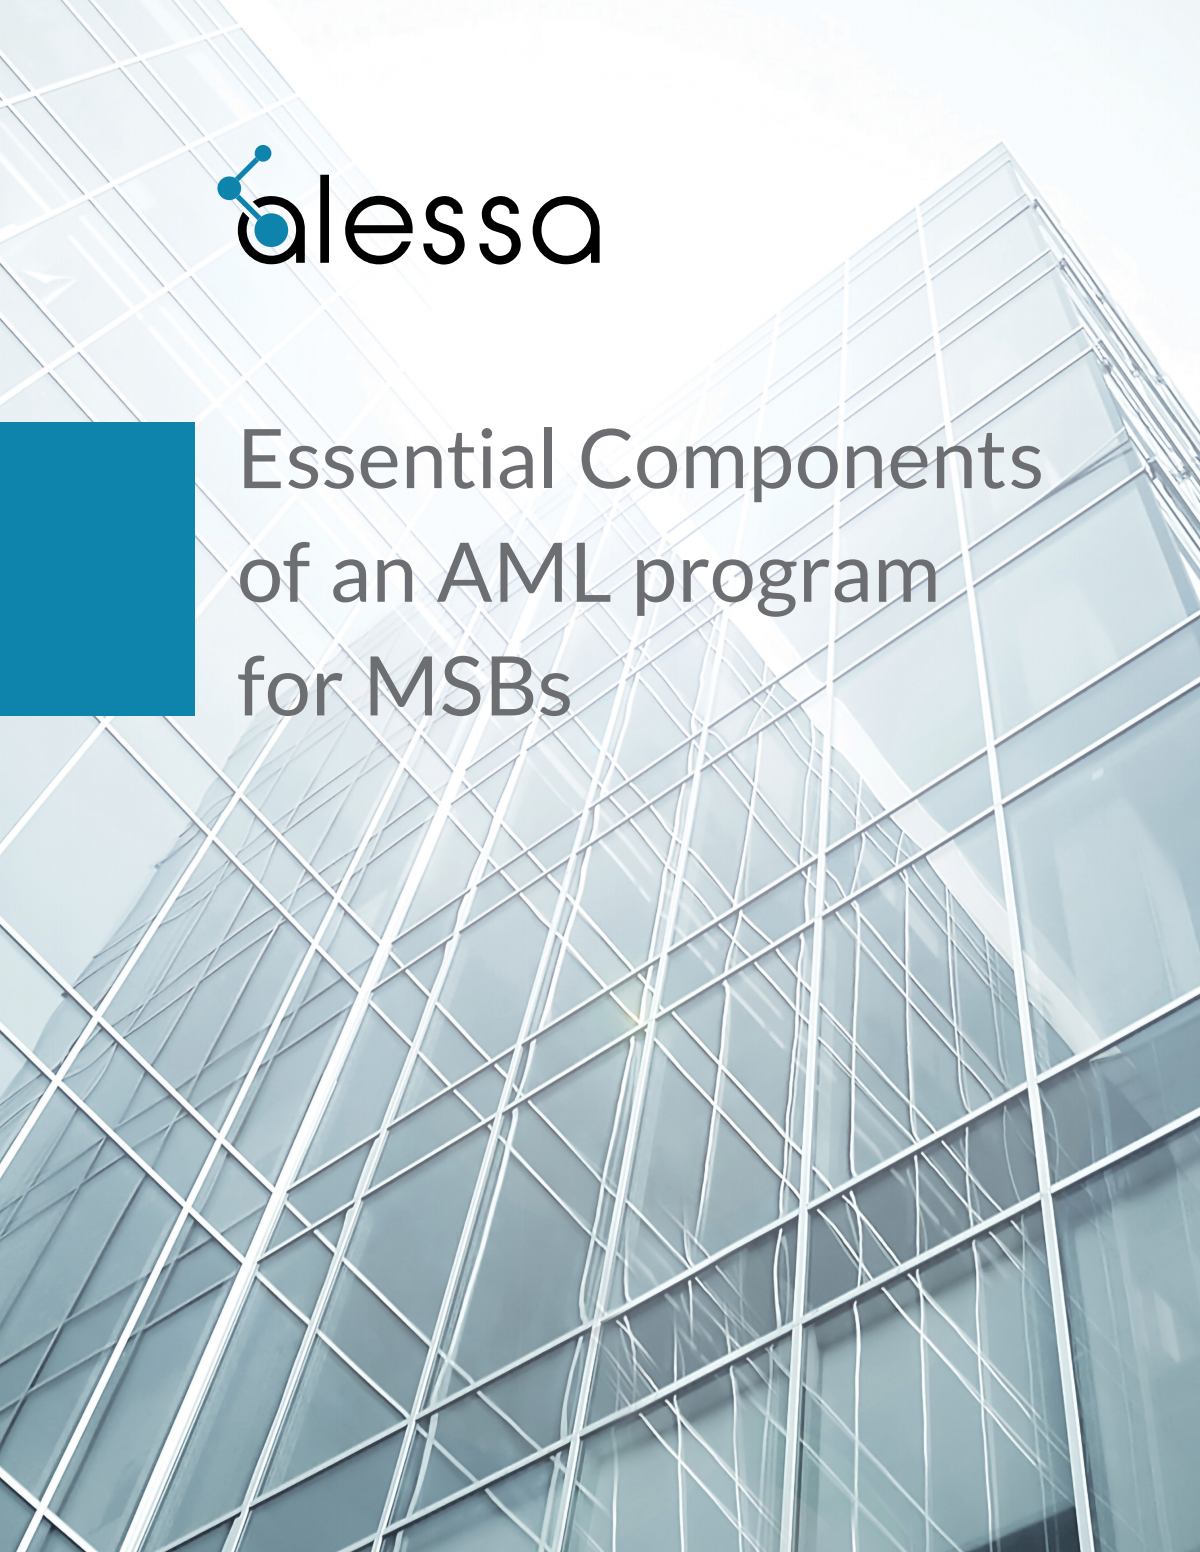 """""""Essential Components of an AML program for MSBs"""" - Design new Alessa format"""